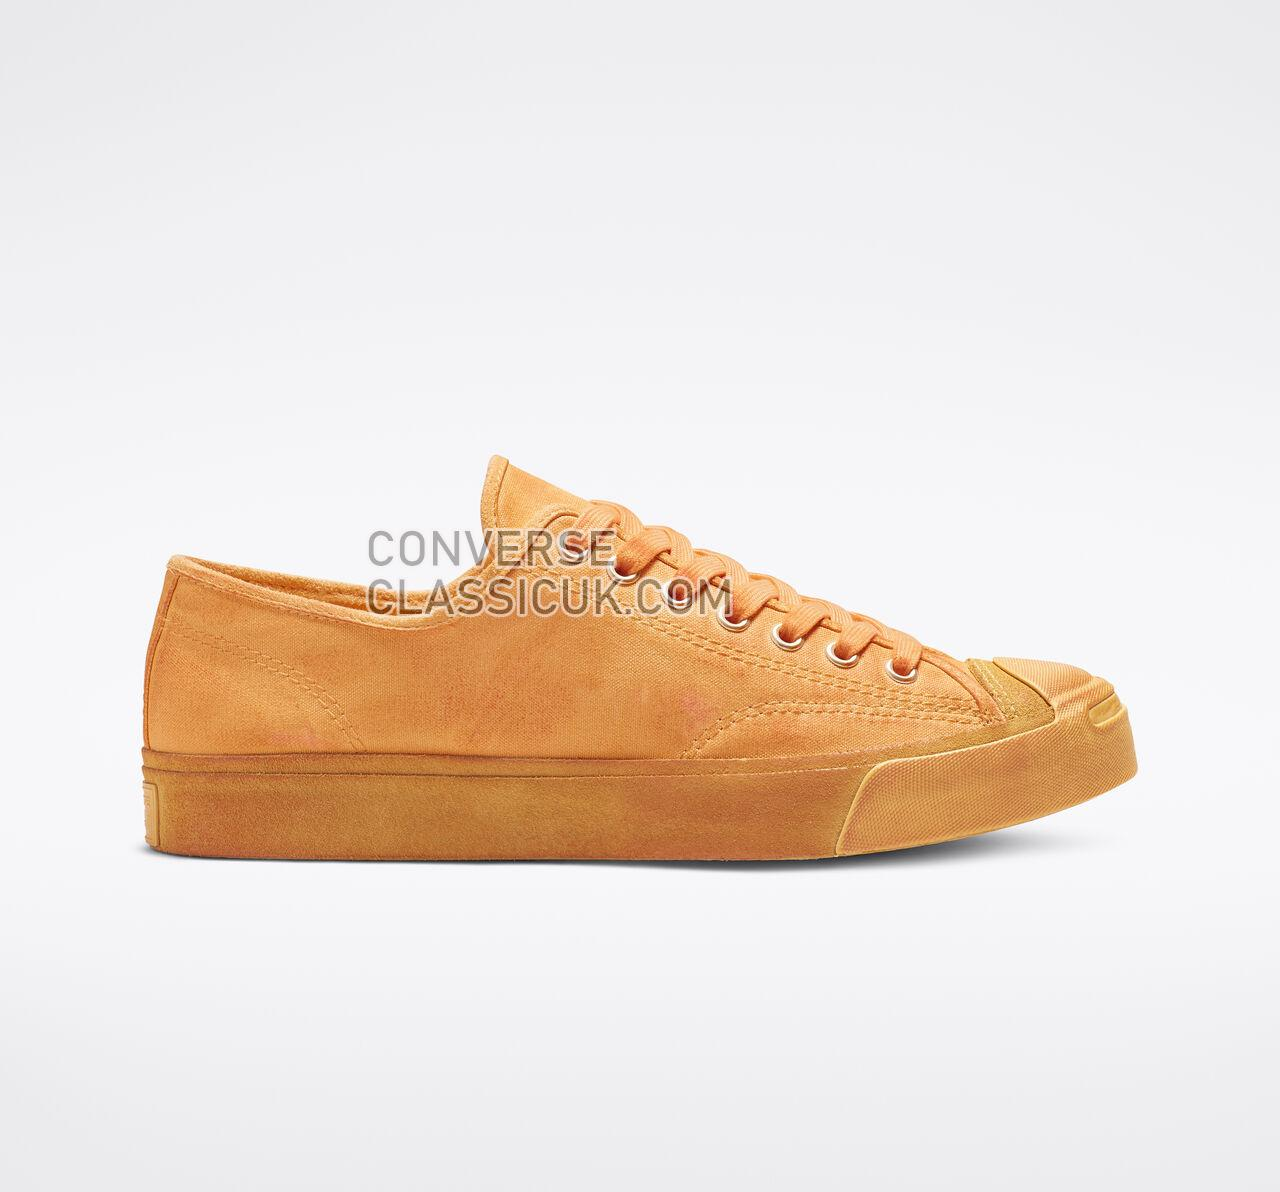 Converse Jack Purcell Burnished Suede Low Top Mens Womens Unisex 164102C Melon Baller/Turf Orange Shoes